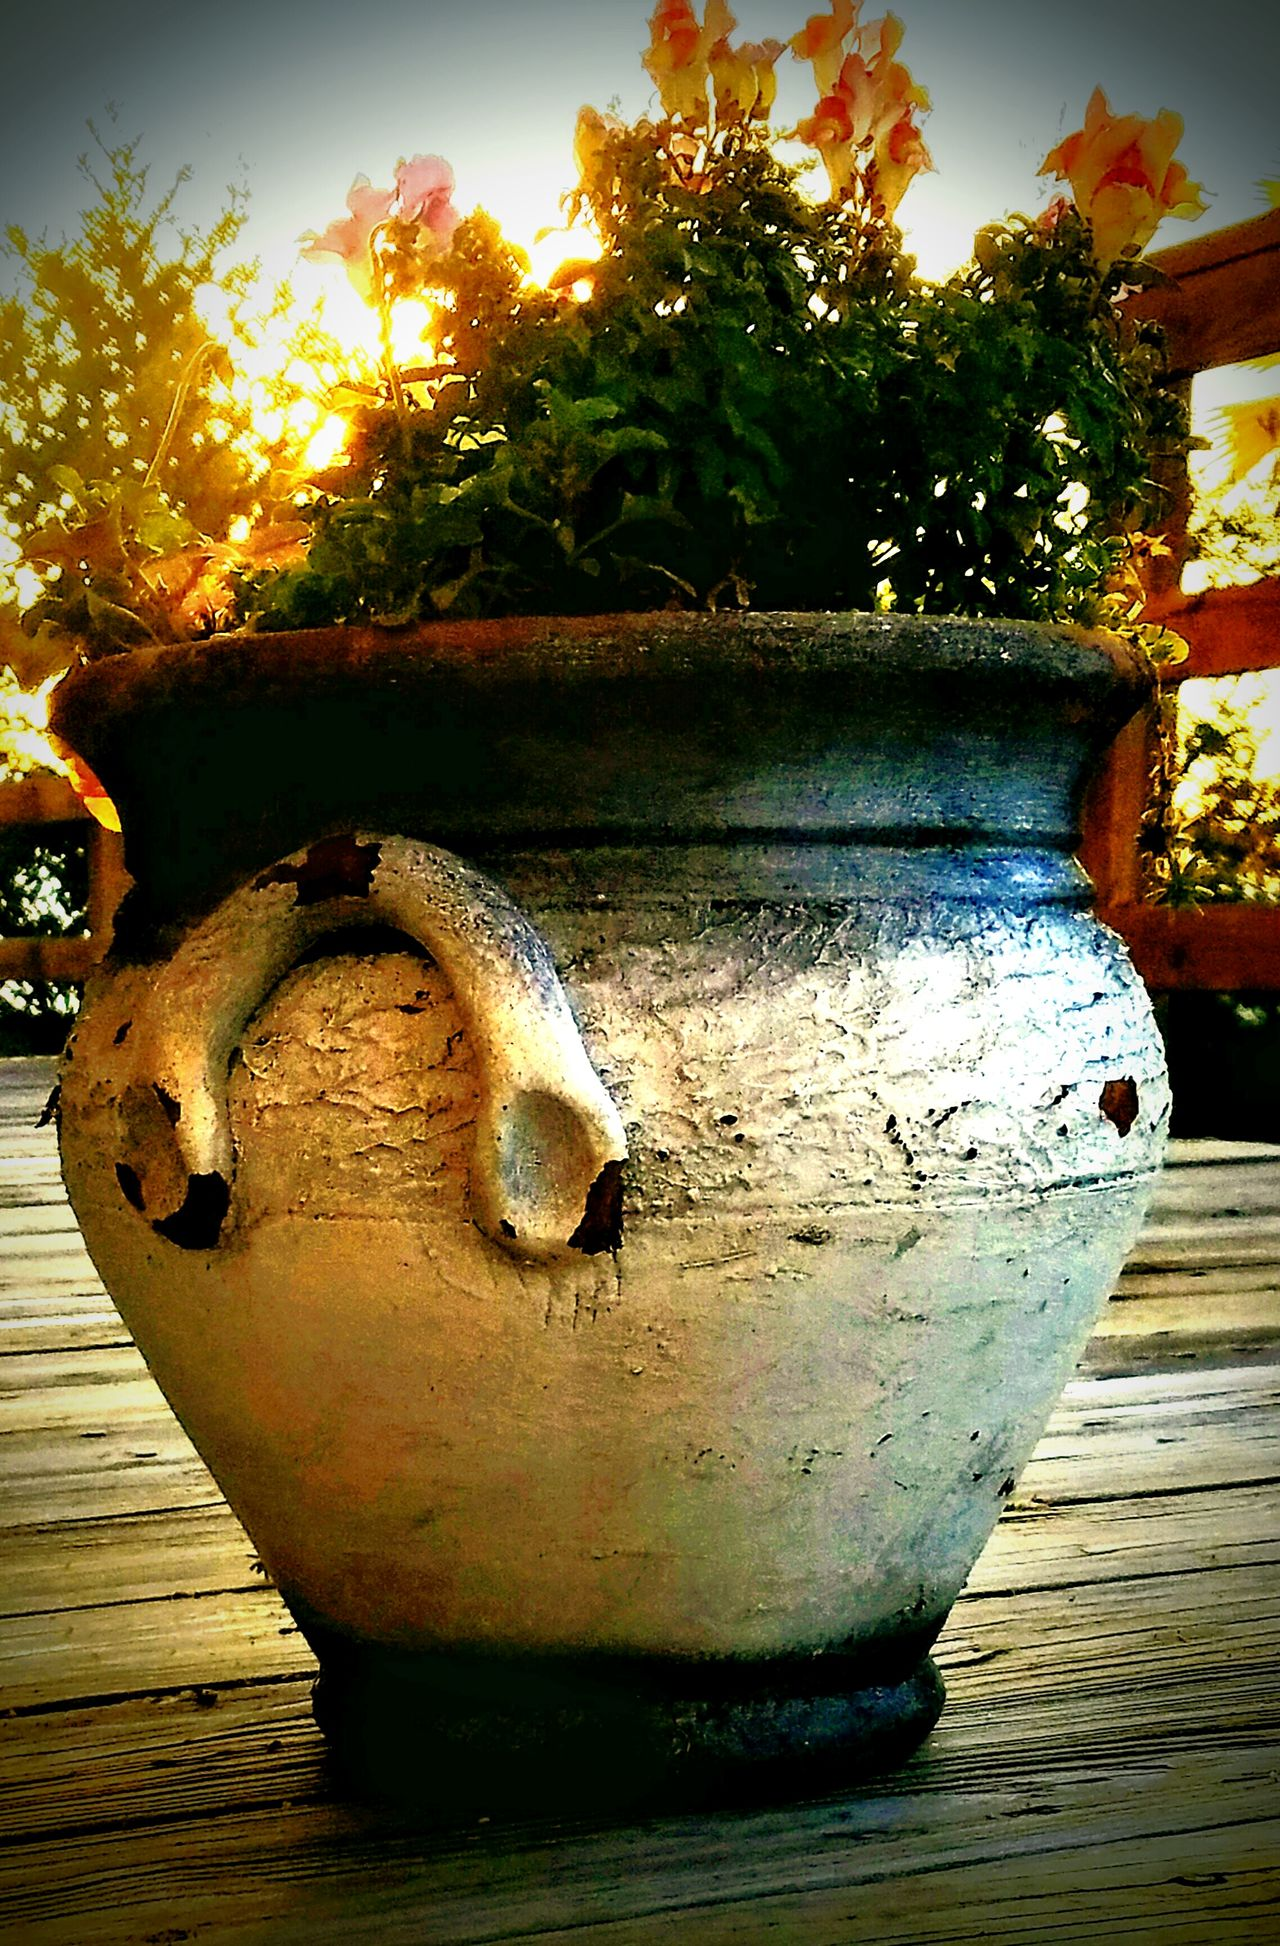 No People Close-up Outdoors Day Flowers Flower Pot Rustic Wood Wooden Post Wooden Planks Porch Porch Railing Plants 🌱 Plants And Flowers Potted Plants Potted Plants In Sun Potted Plants Collection Samsung Galaxy S7 Eyeemphotography Plant Life Antique Antique Flower Pot Clay Pot Morning Sky Sky